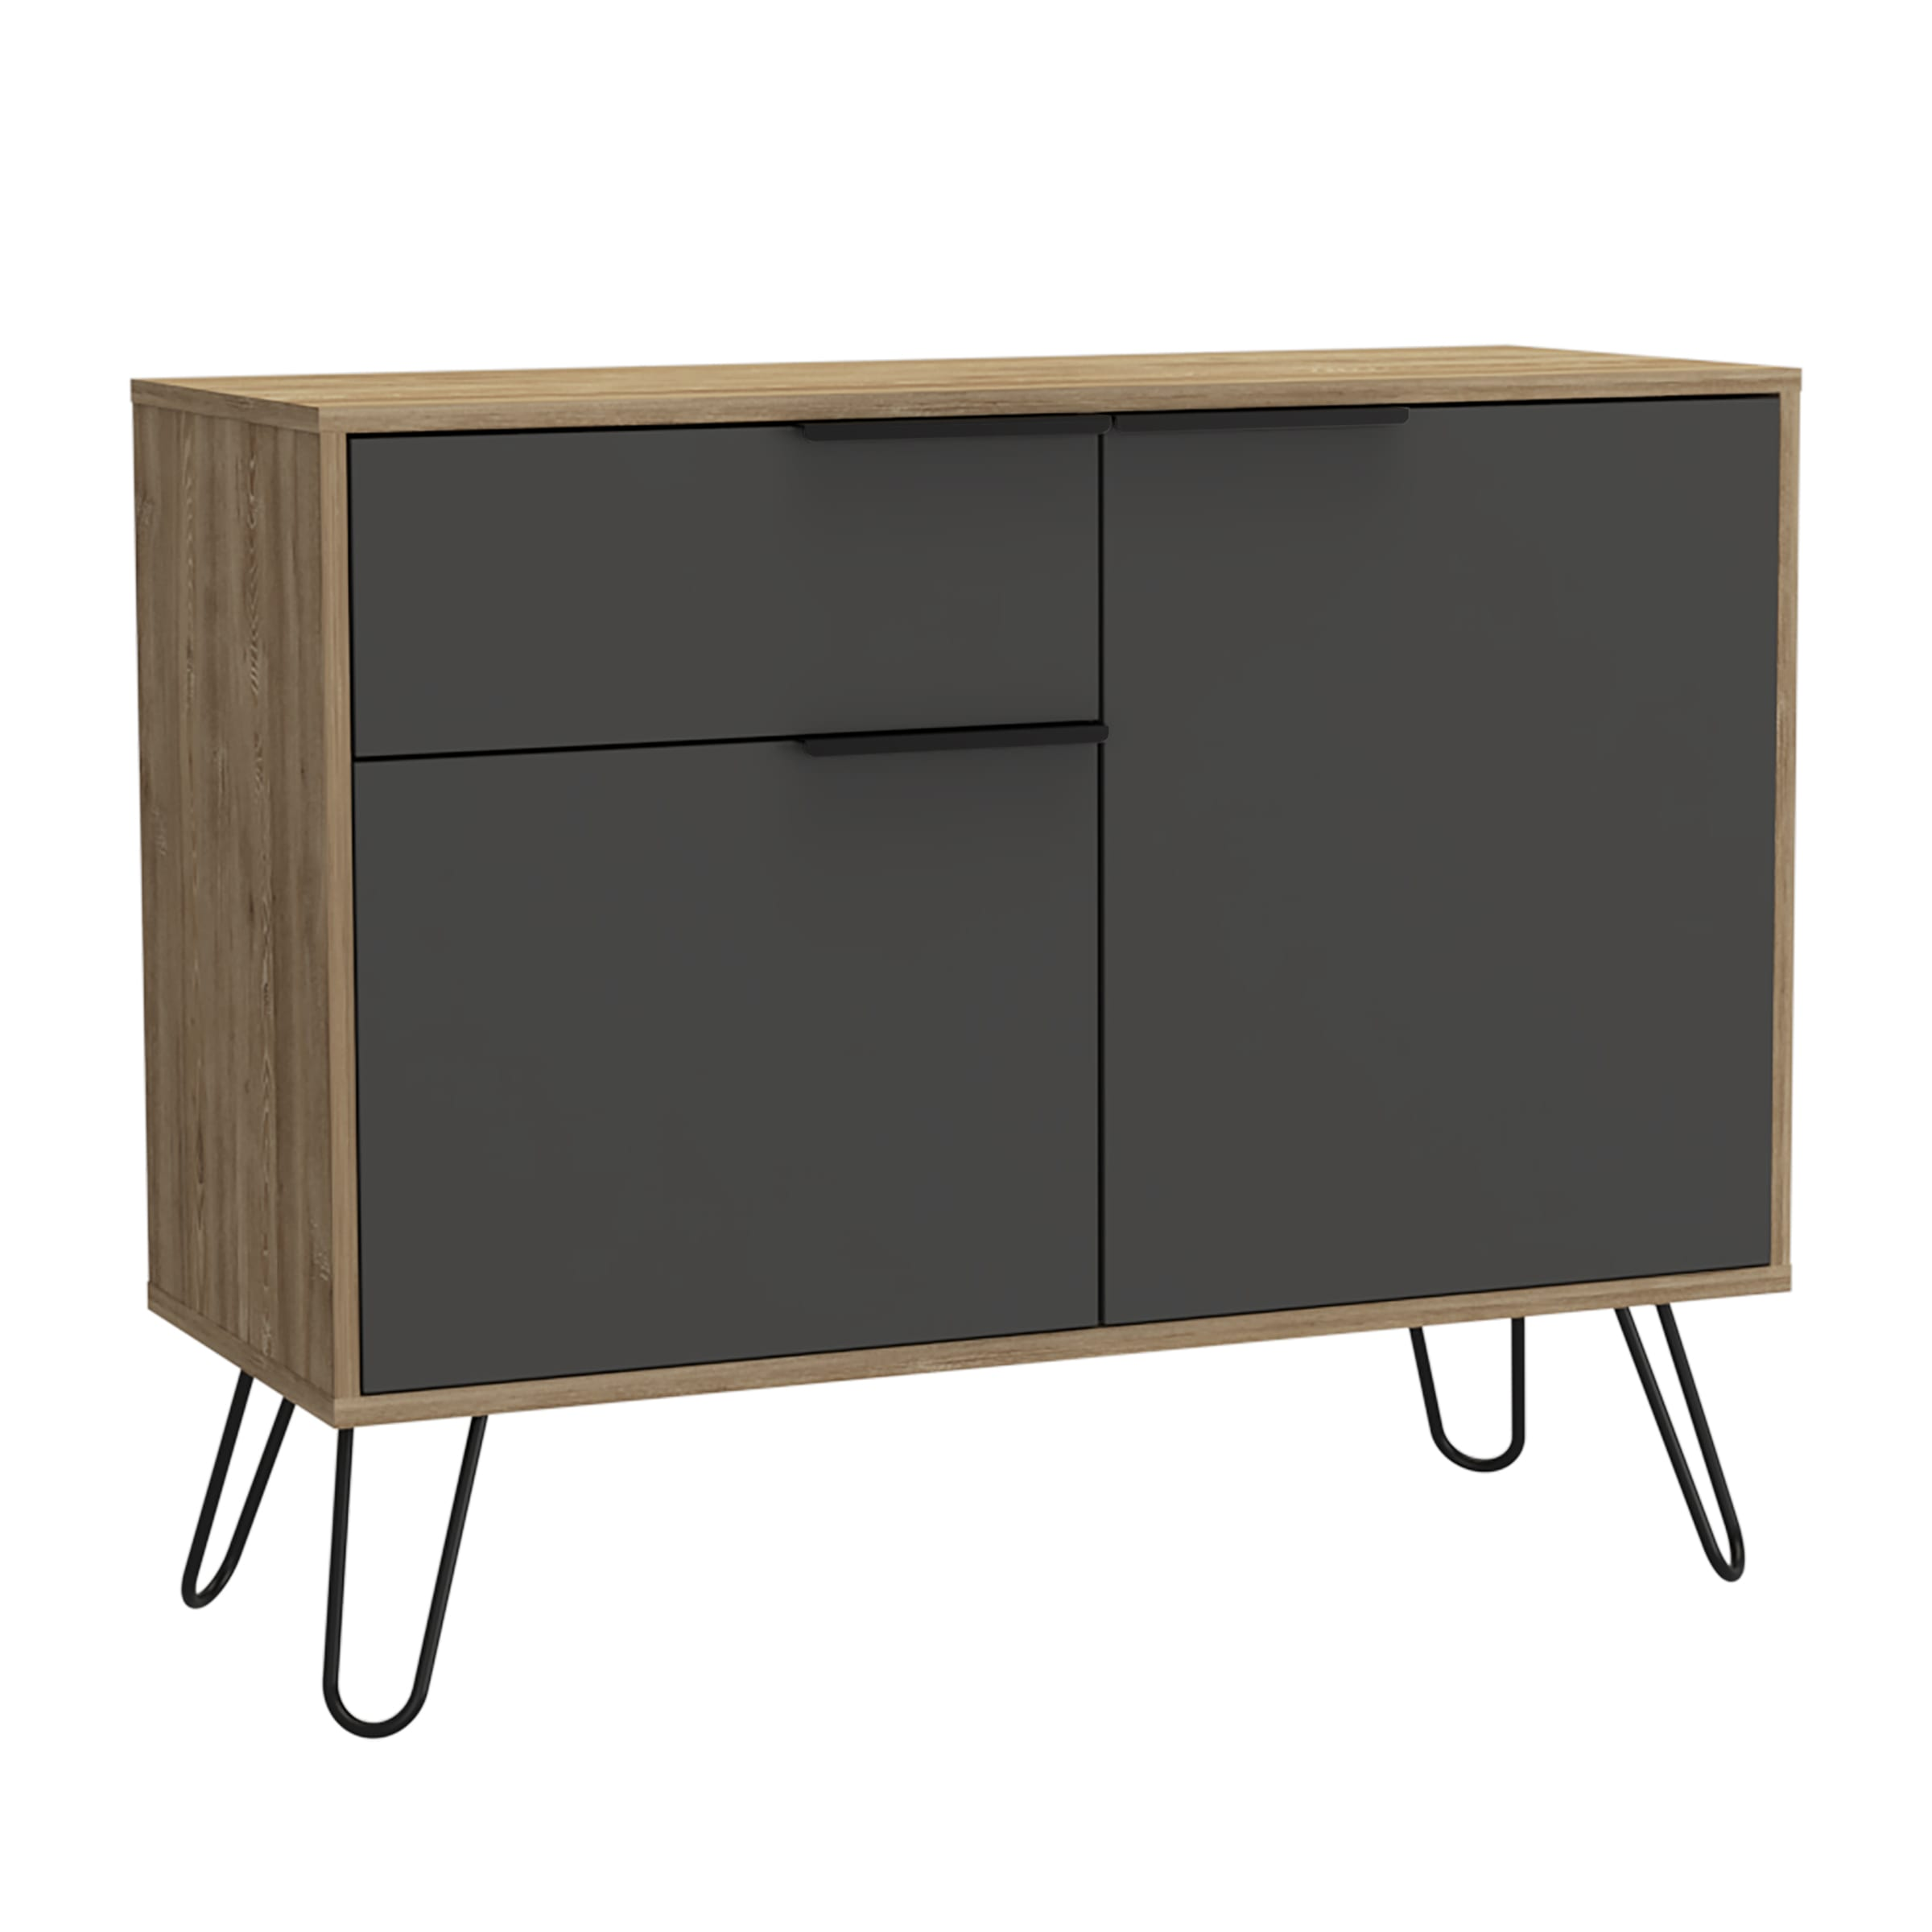 Ibiza small sideboard with 2 doors and drawer